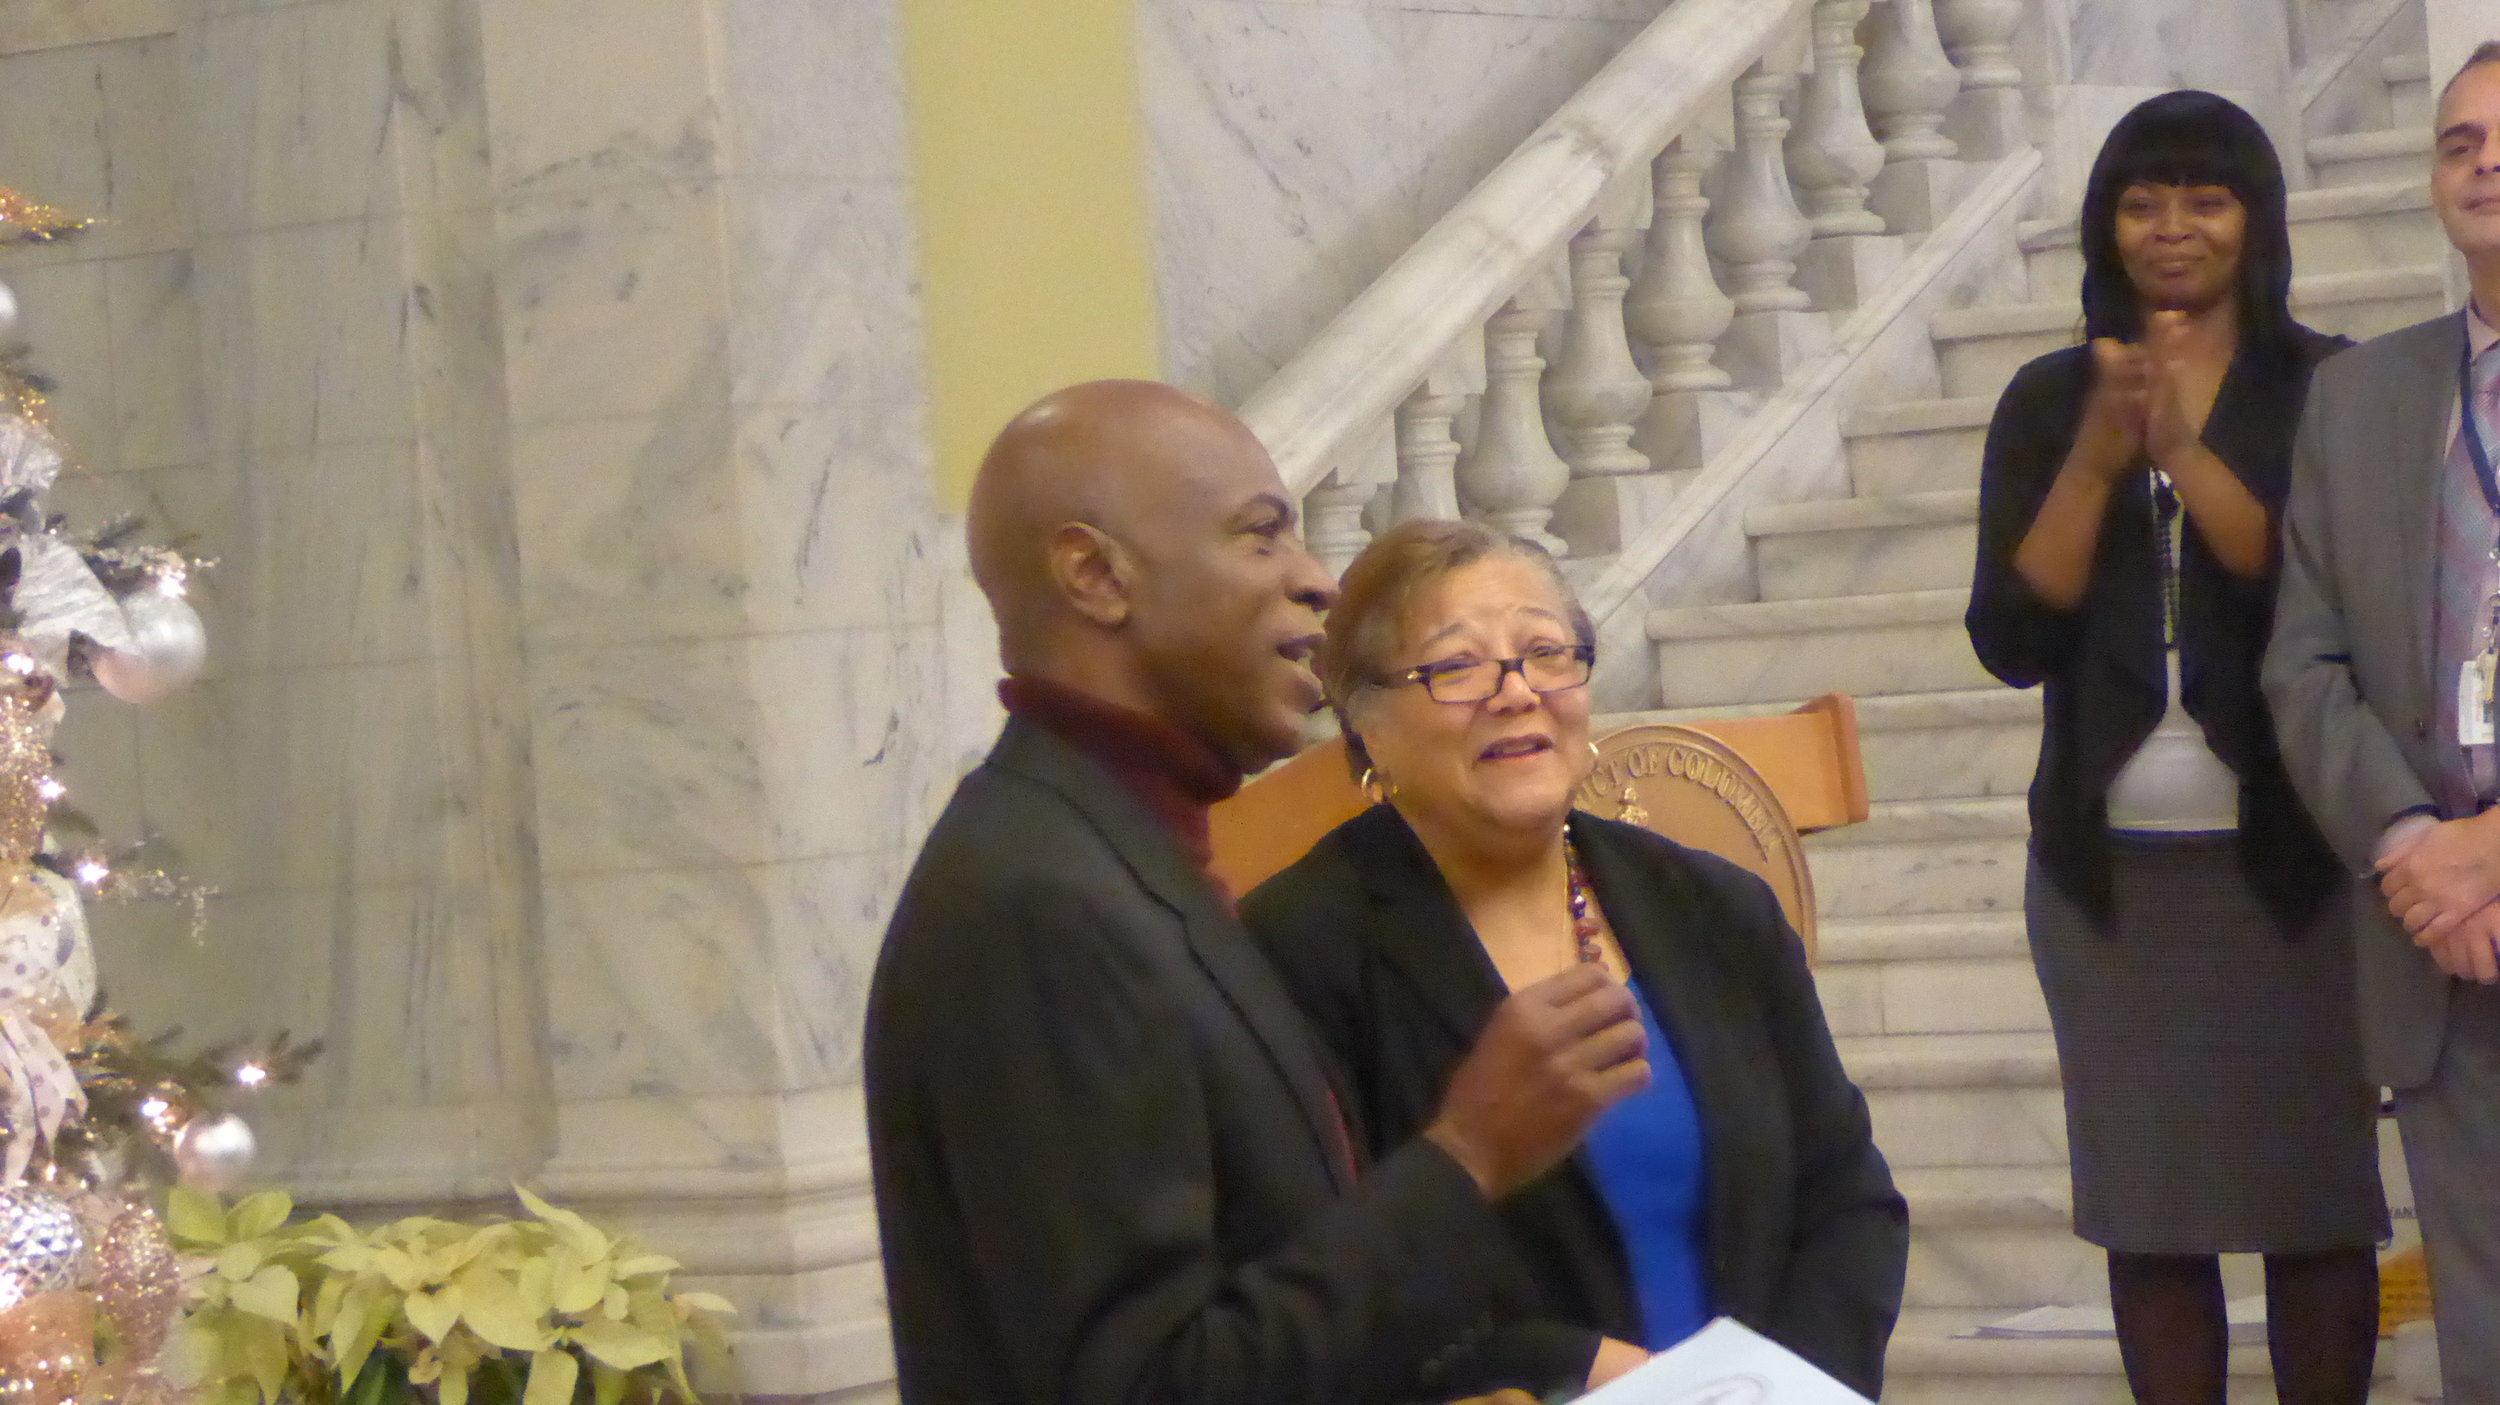 Phinis Jones received special recognition for his 5 decades working East of the River